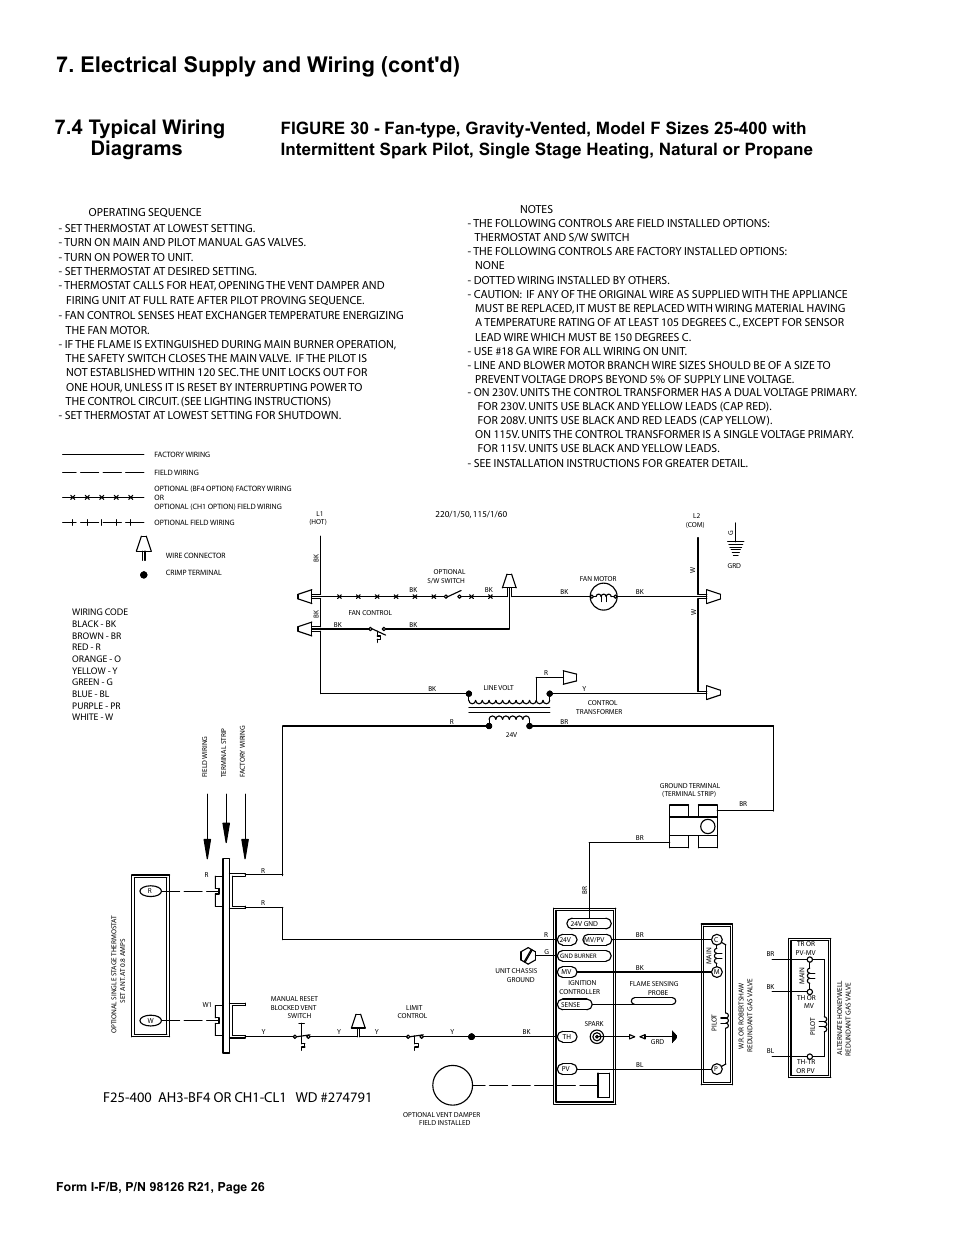 reznor b unit installation manual page26 reznor wiring diagram reznor wiring diagram at bayanpartner.co